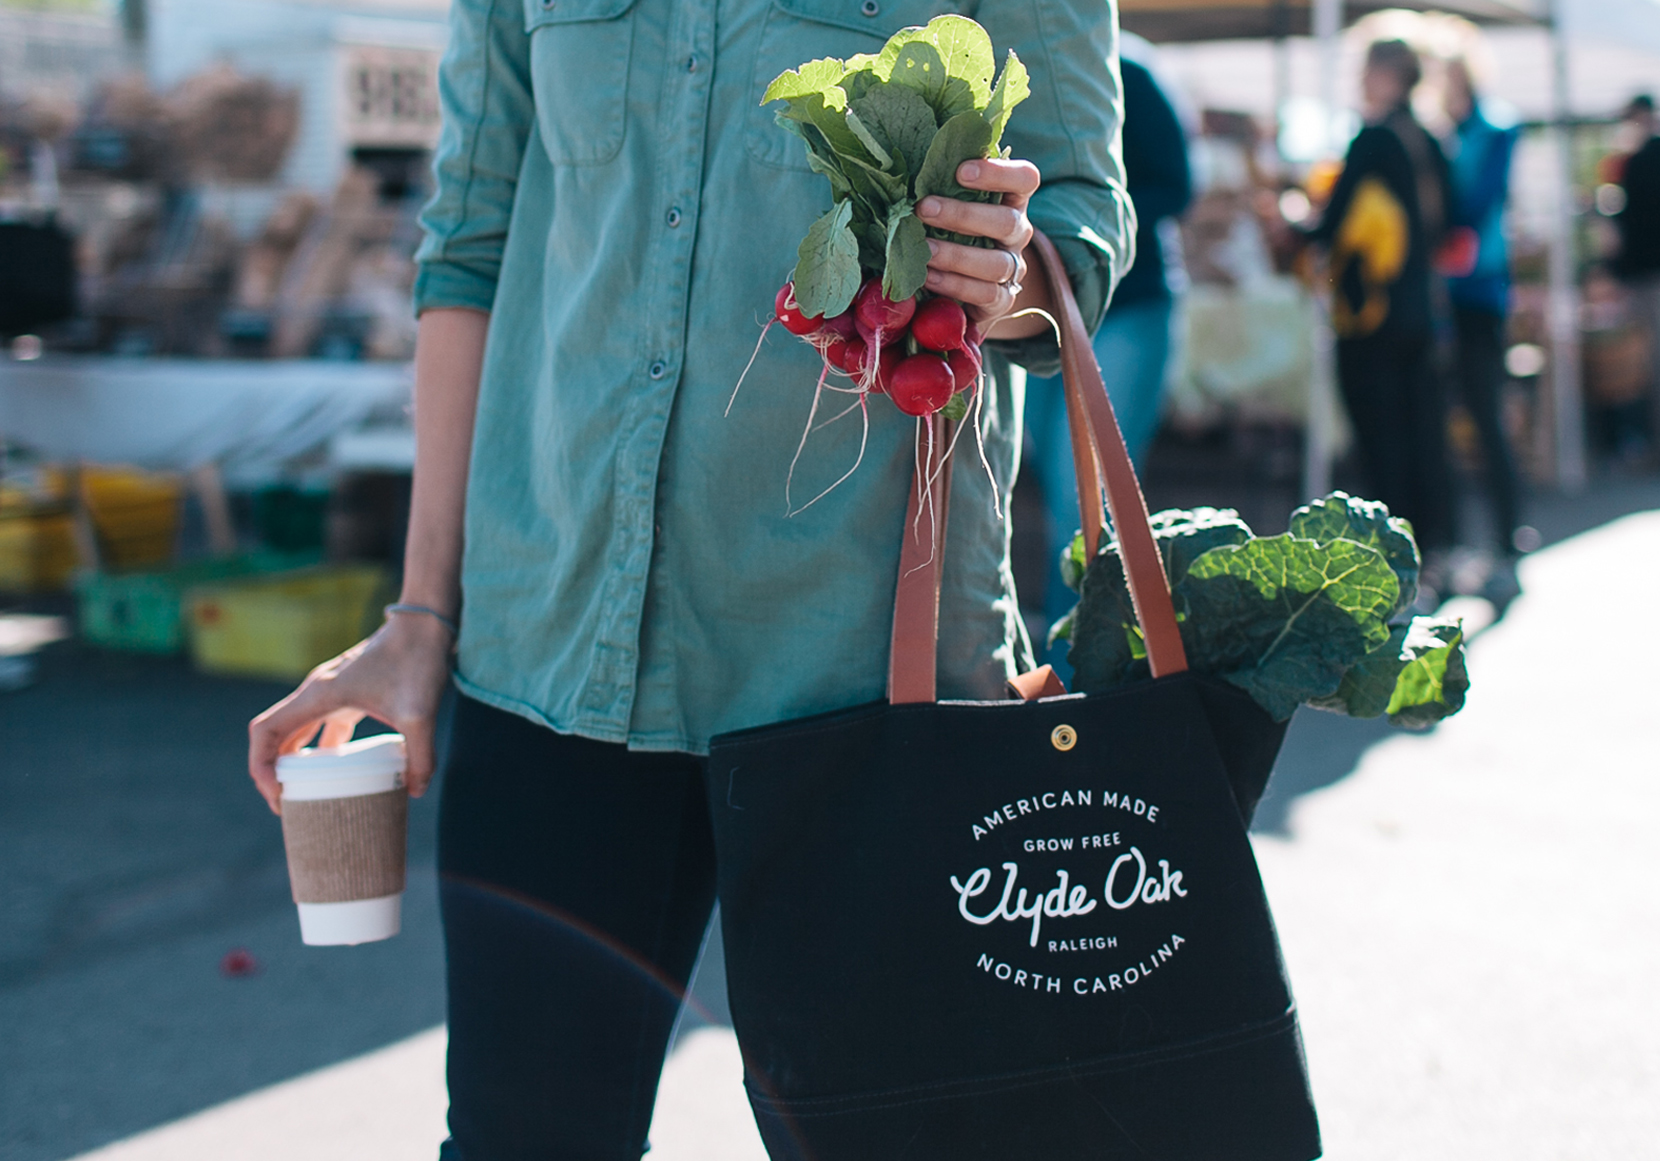 The Farmers Market and why should go  |  The Fresh Exchange